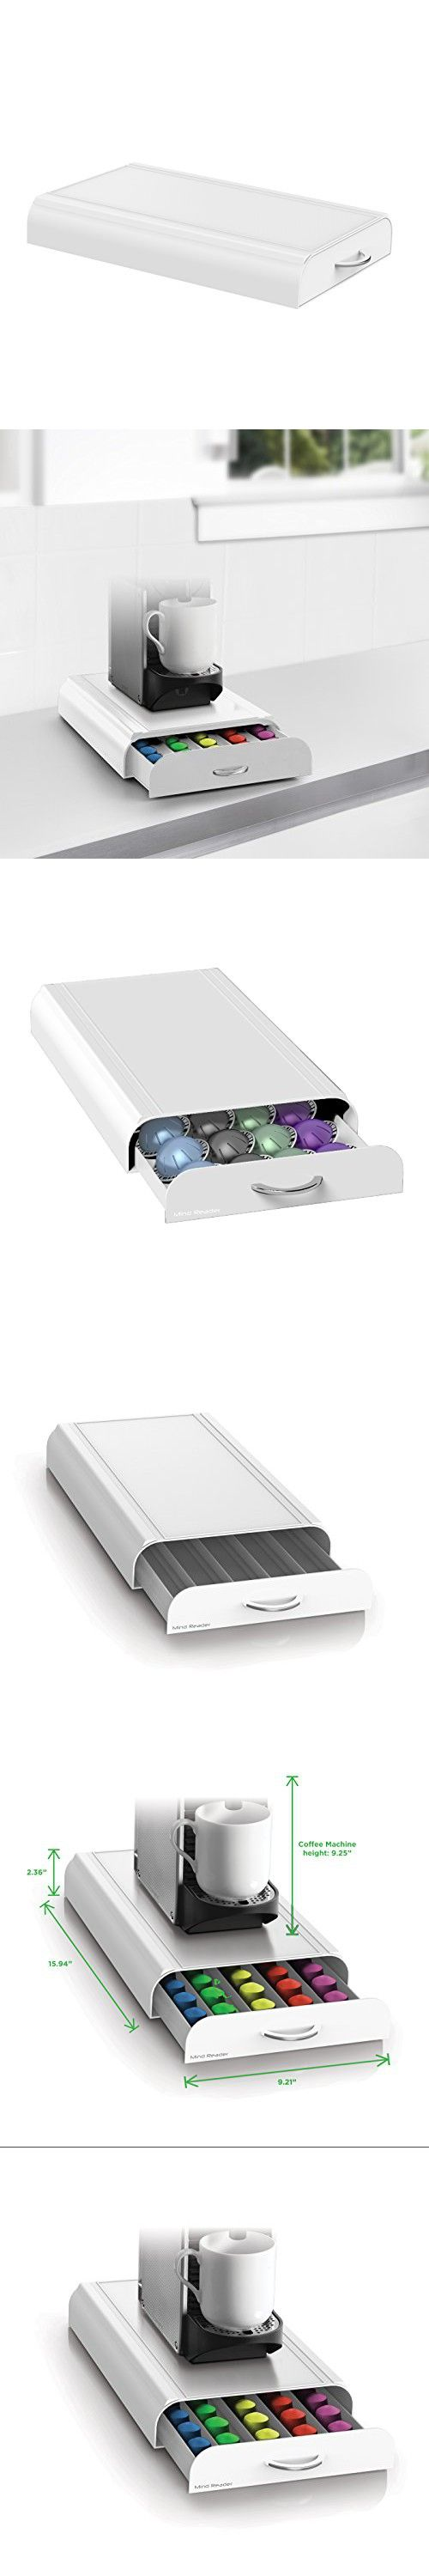 Mind Reader Anchor' Coffee Pod Storage Drawer for 50 Nespresso Capsules, White